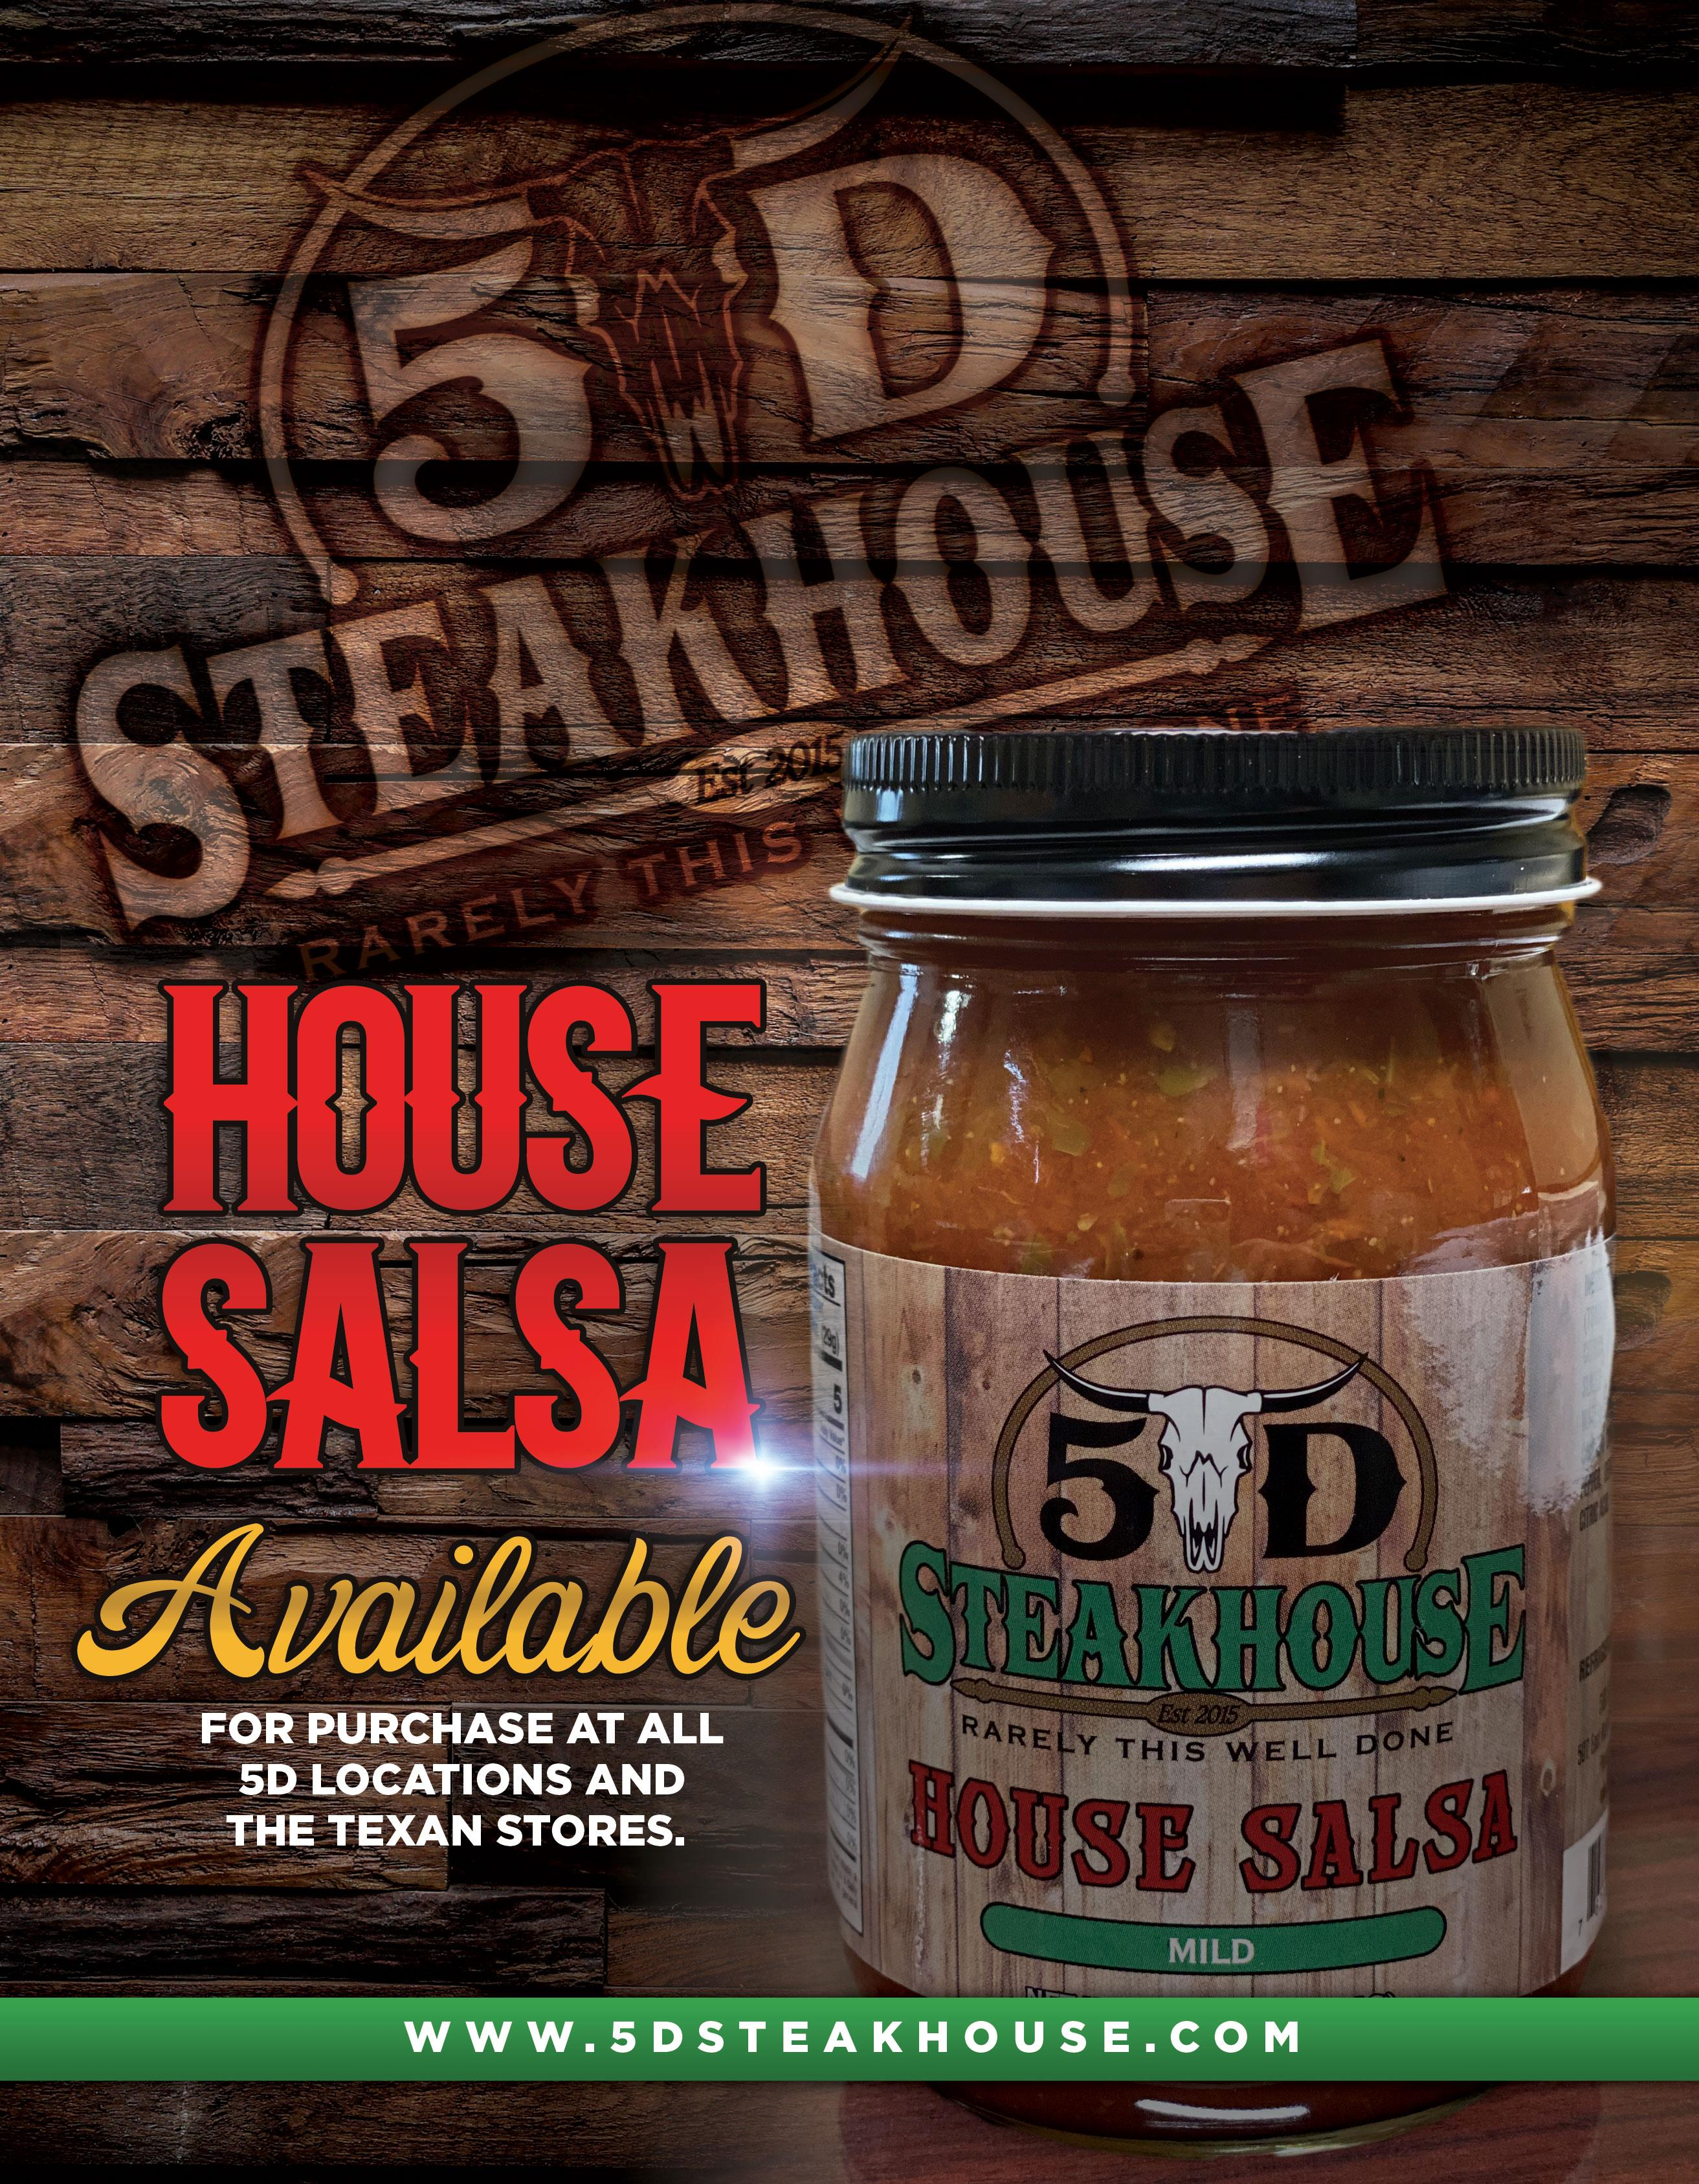 house salsa available for purchase at all 5D locations and the texan stores